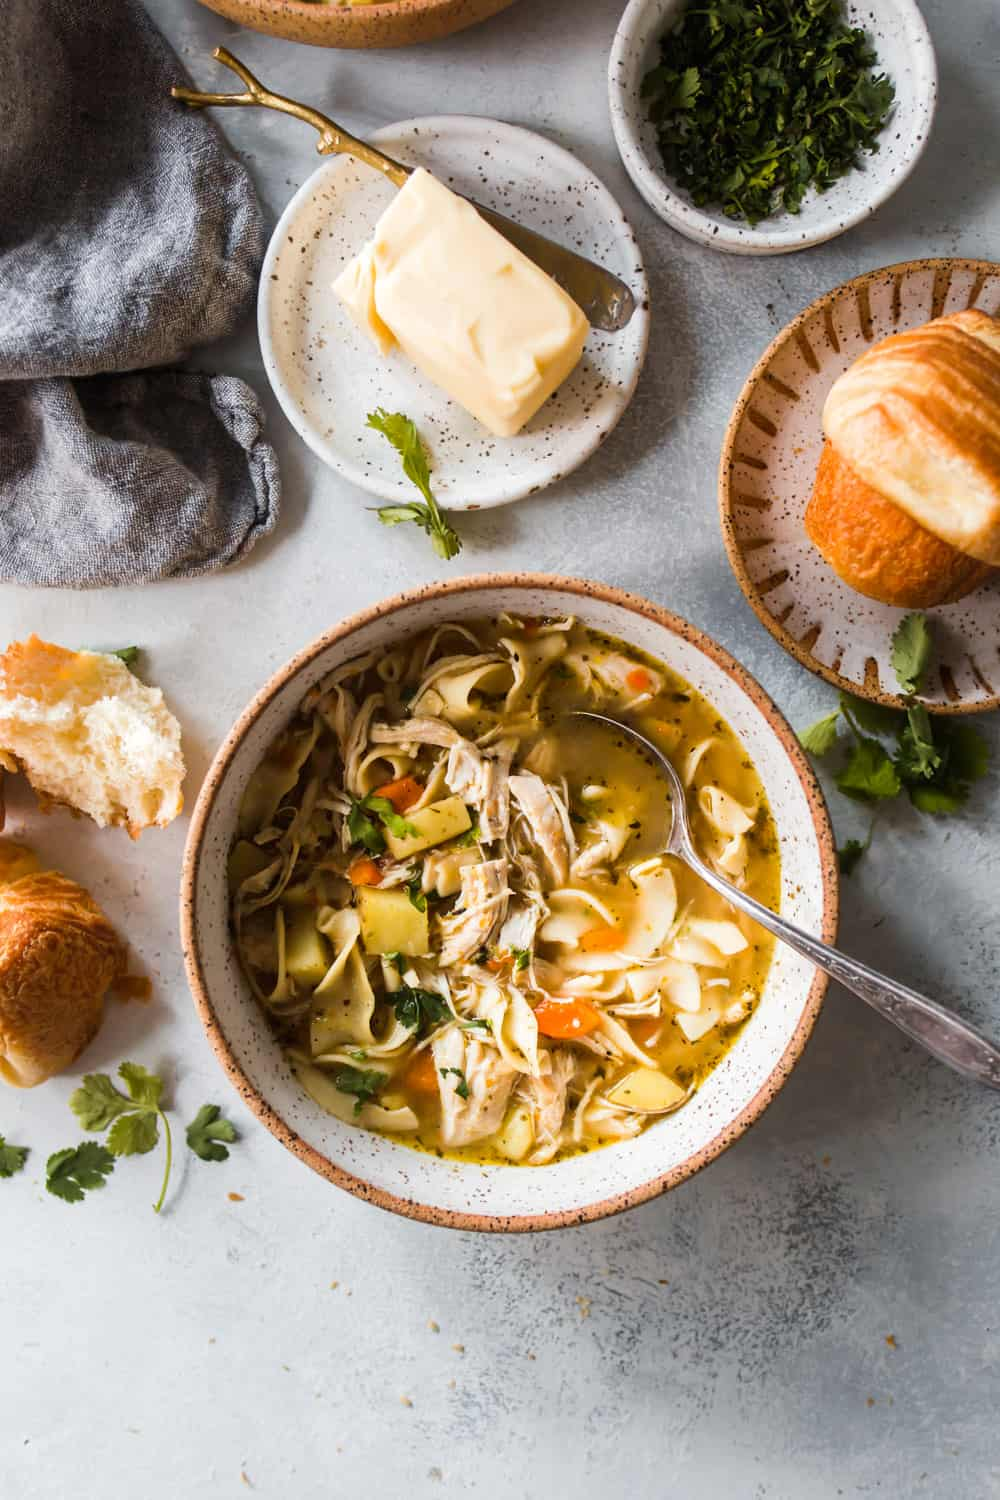 Large white and brown bowl holding a spoon and chicken noodle soup